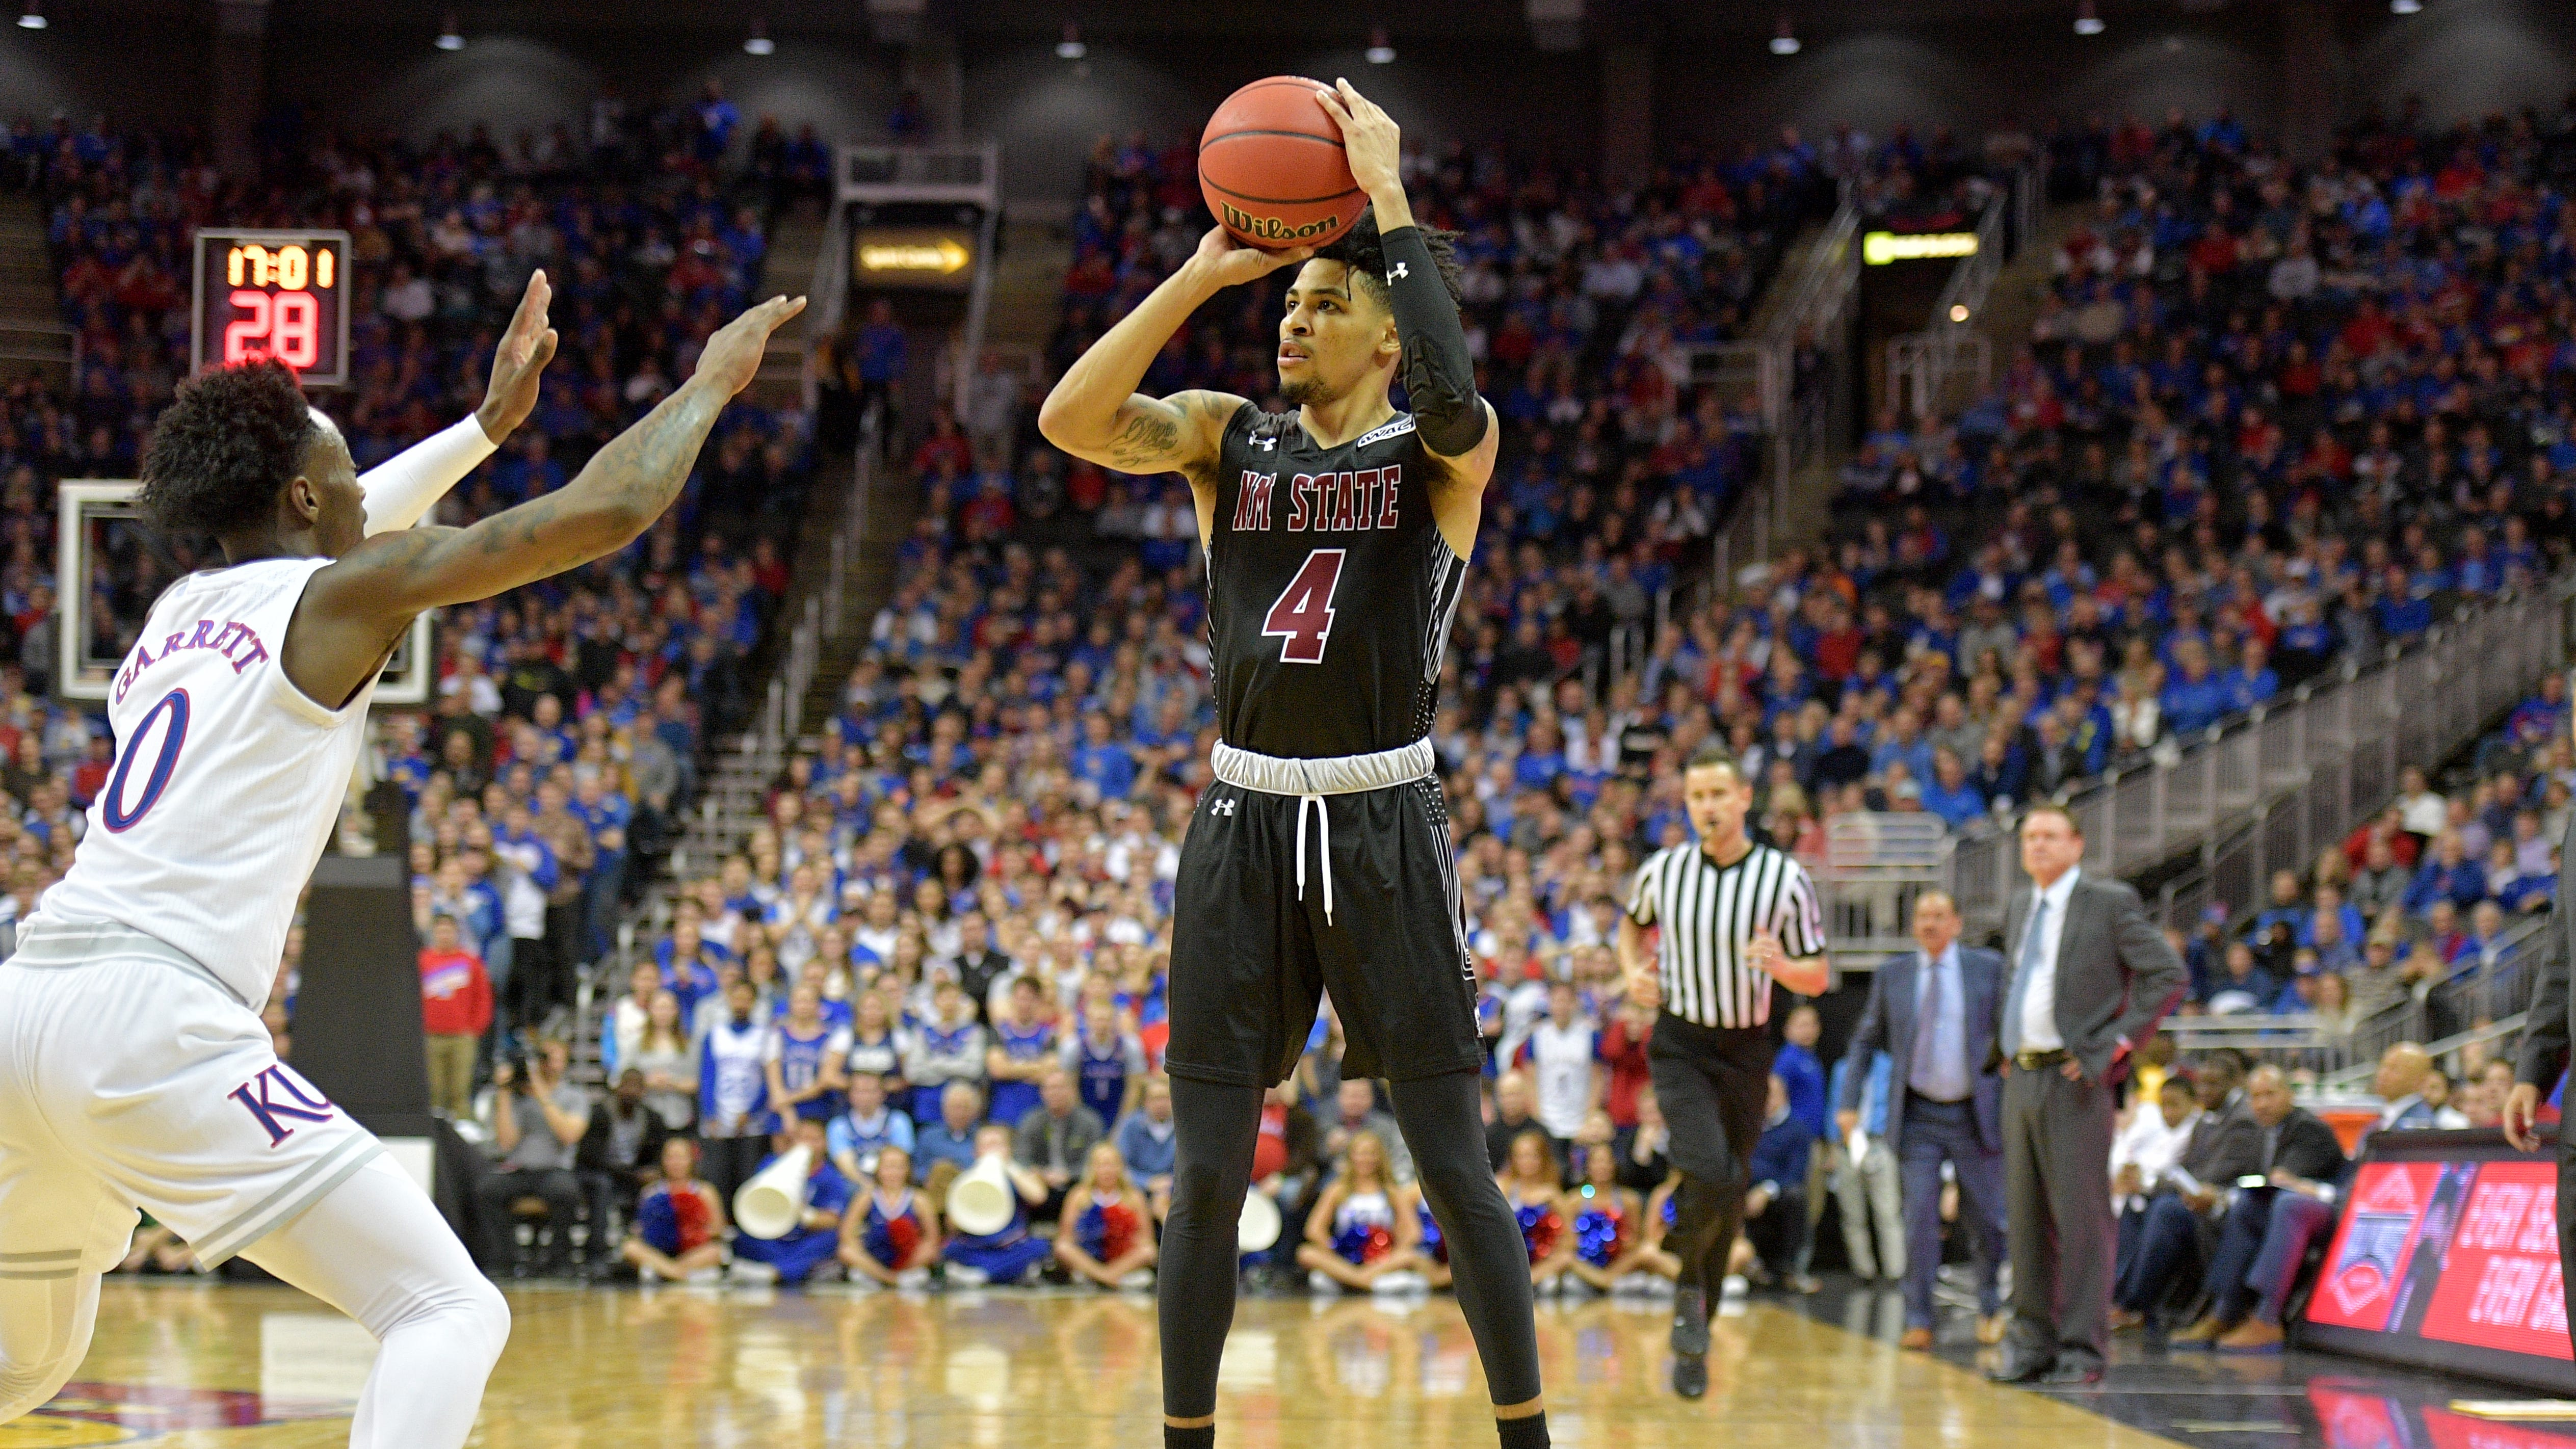 New Mexico State guard JoJo Zamora and the Aggies host Northern Colorado on Monday at the Pan American Center.